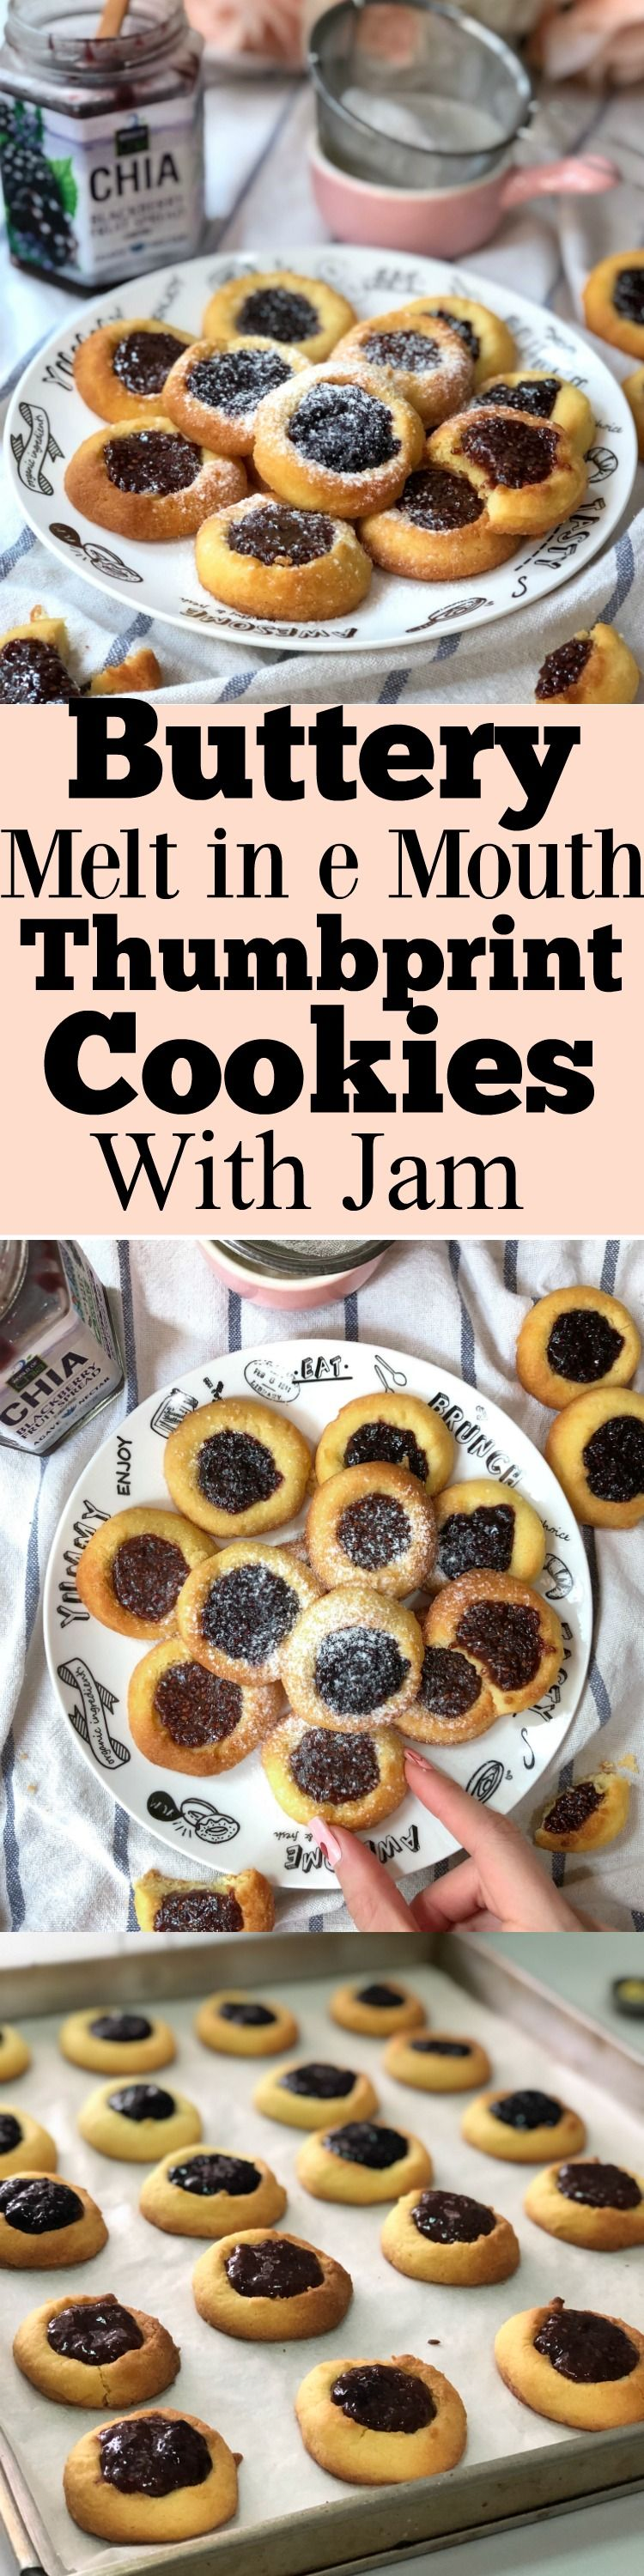 Easy Jam Thumbprint Cookies - Buttery and Delicious - Sherbakes